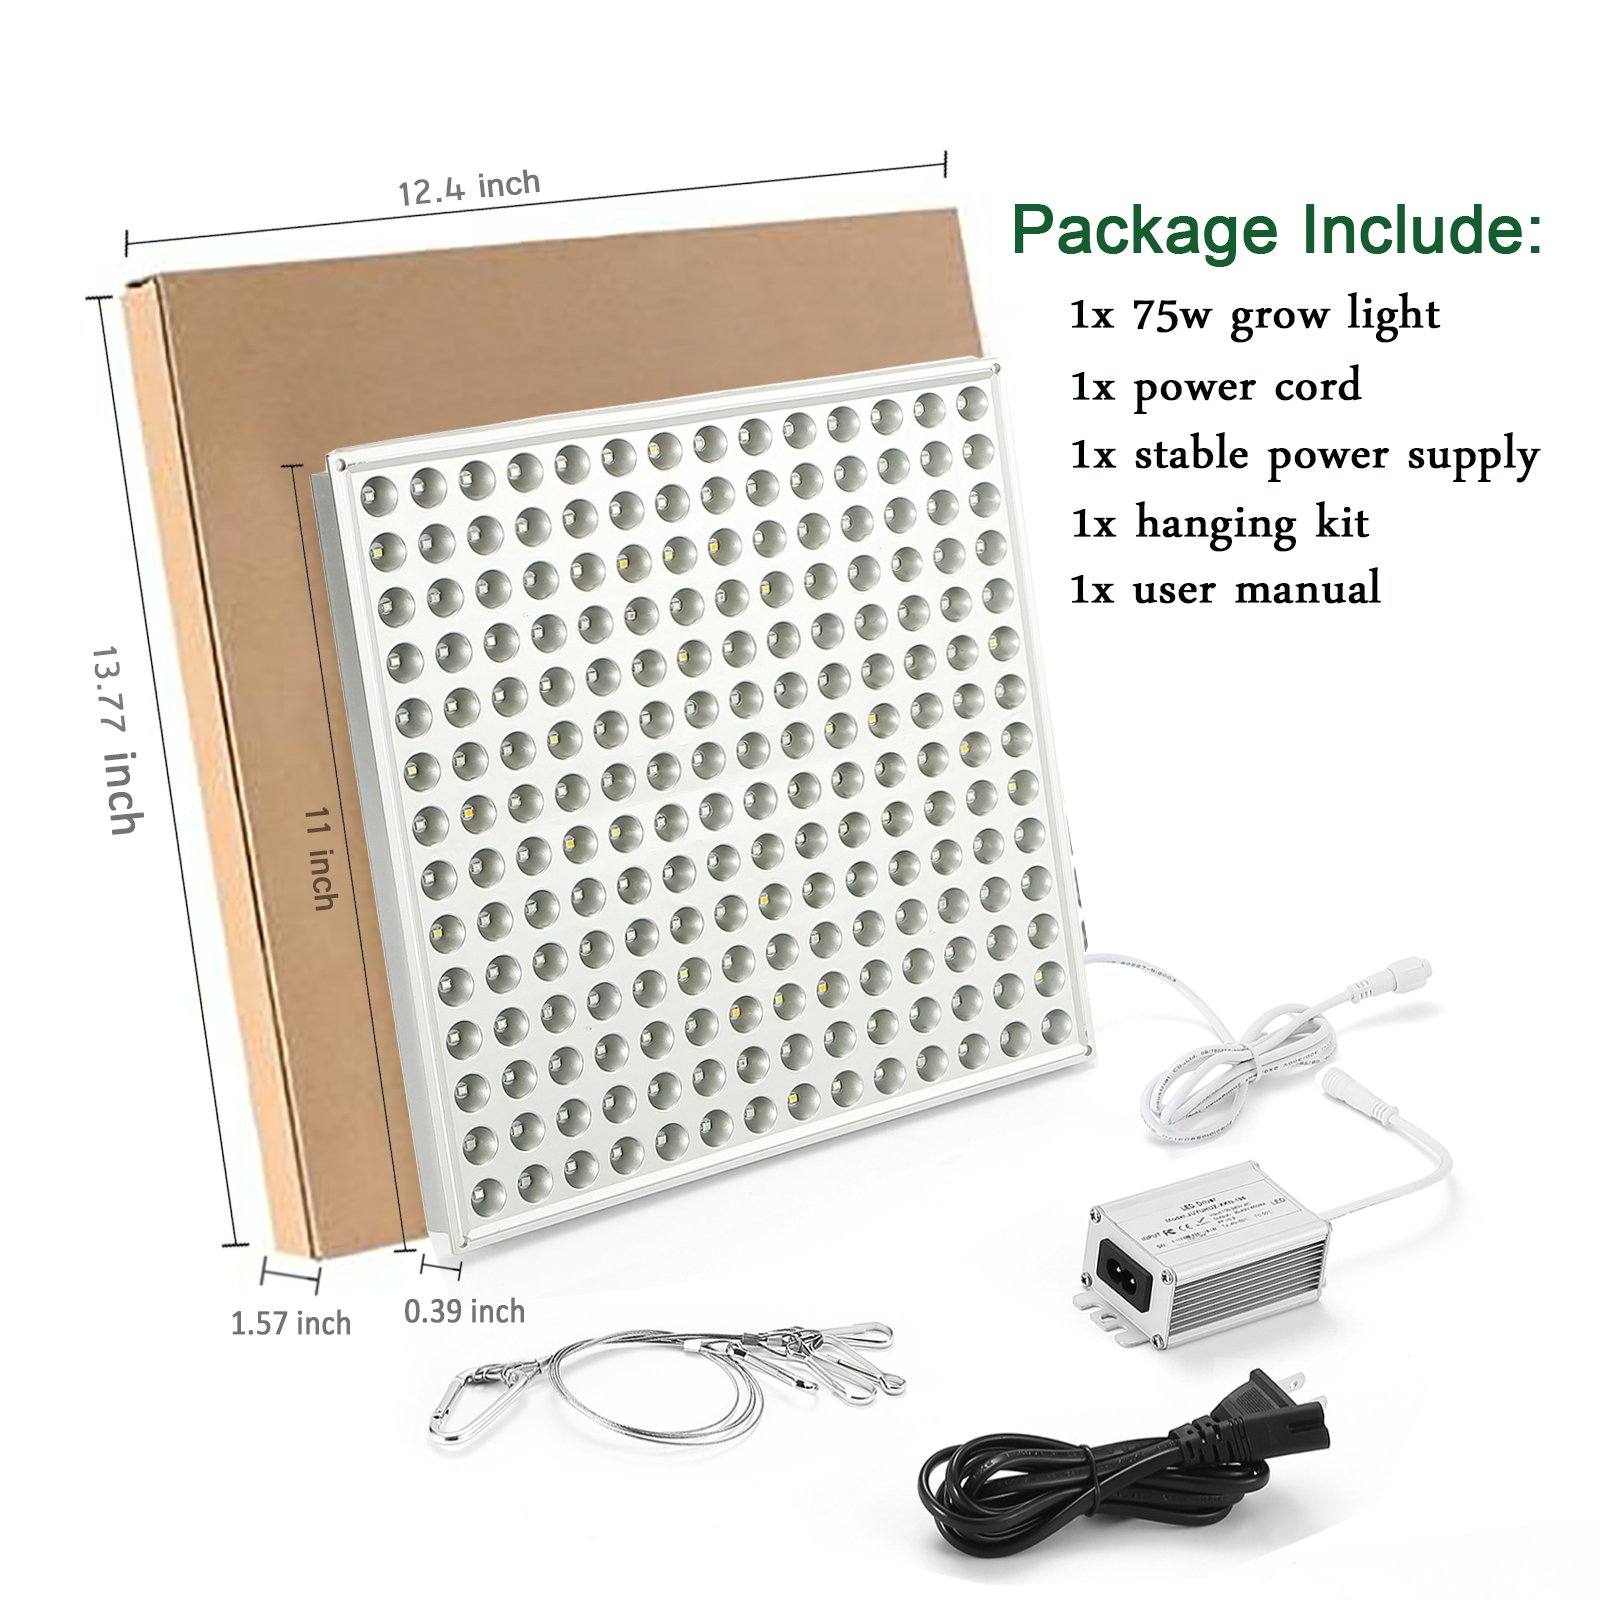 LED Grow Light for Indoor Plants,YGROW Upgraded 75W Growing Lamp Light Bulbs with Exclusive Full Spectrum for Greenhouse Hydroponic Plants from Seeding to Harvest by YGROW (Image #7)